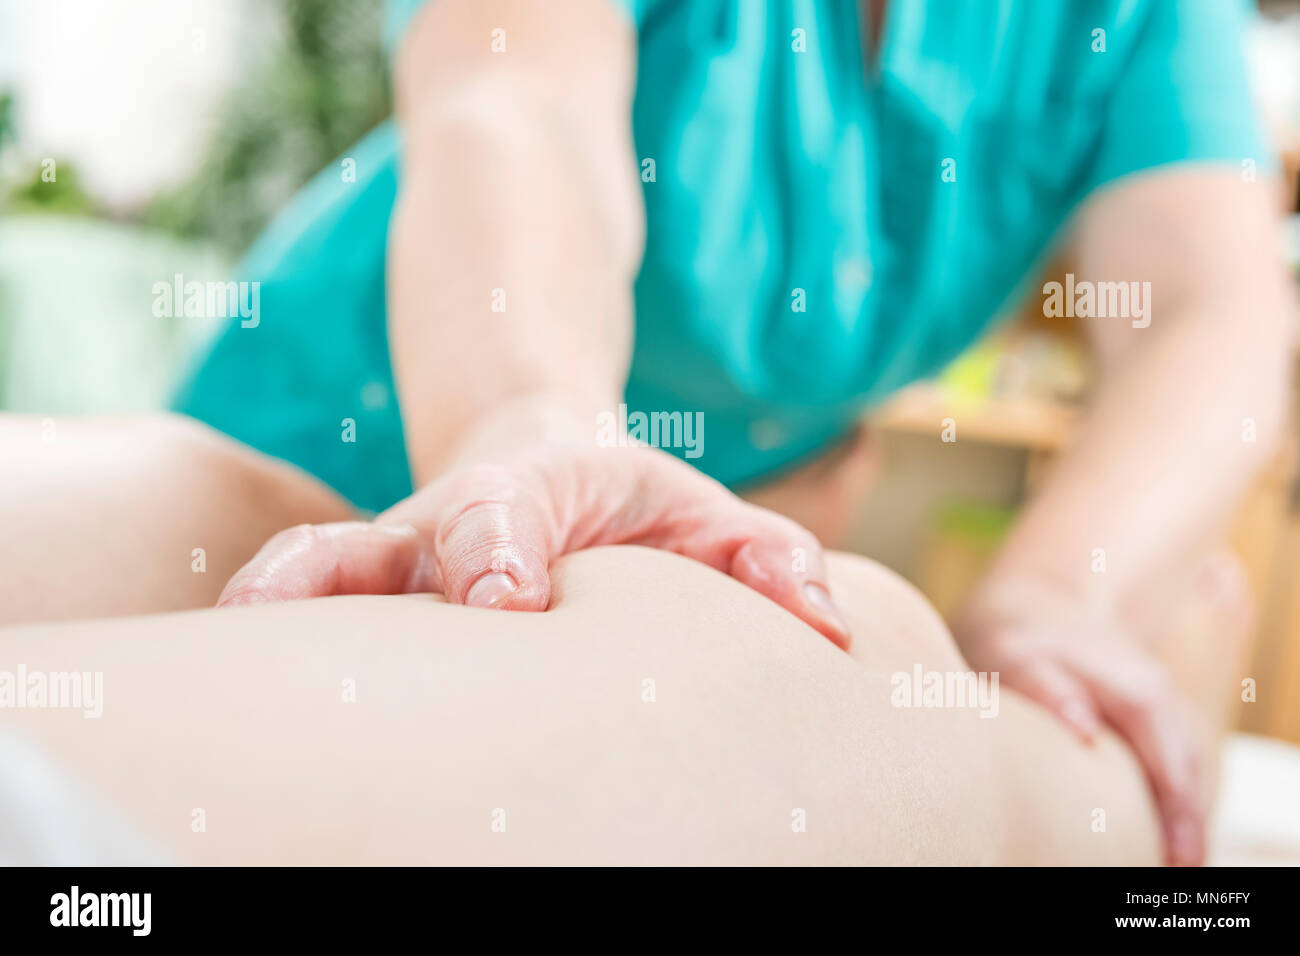 Doctor massages the patient's leg with a force, a blurred background - Stock Image